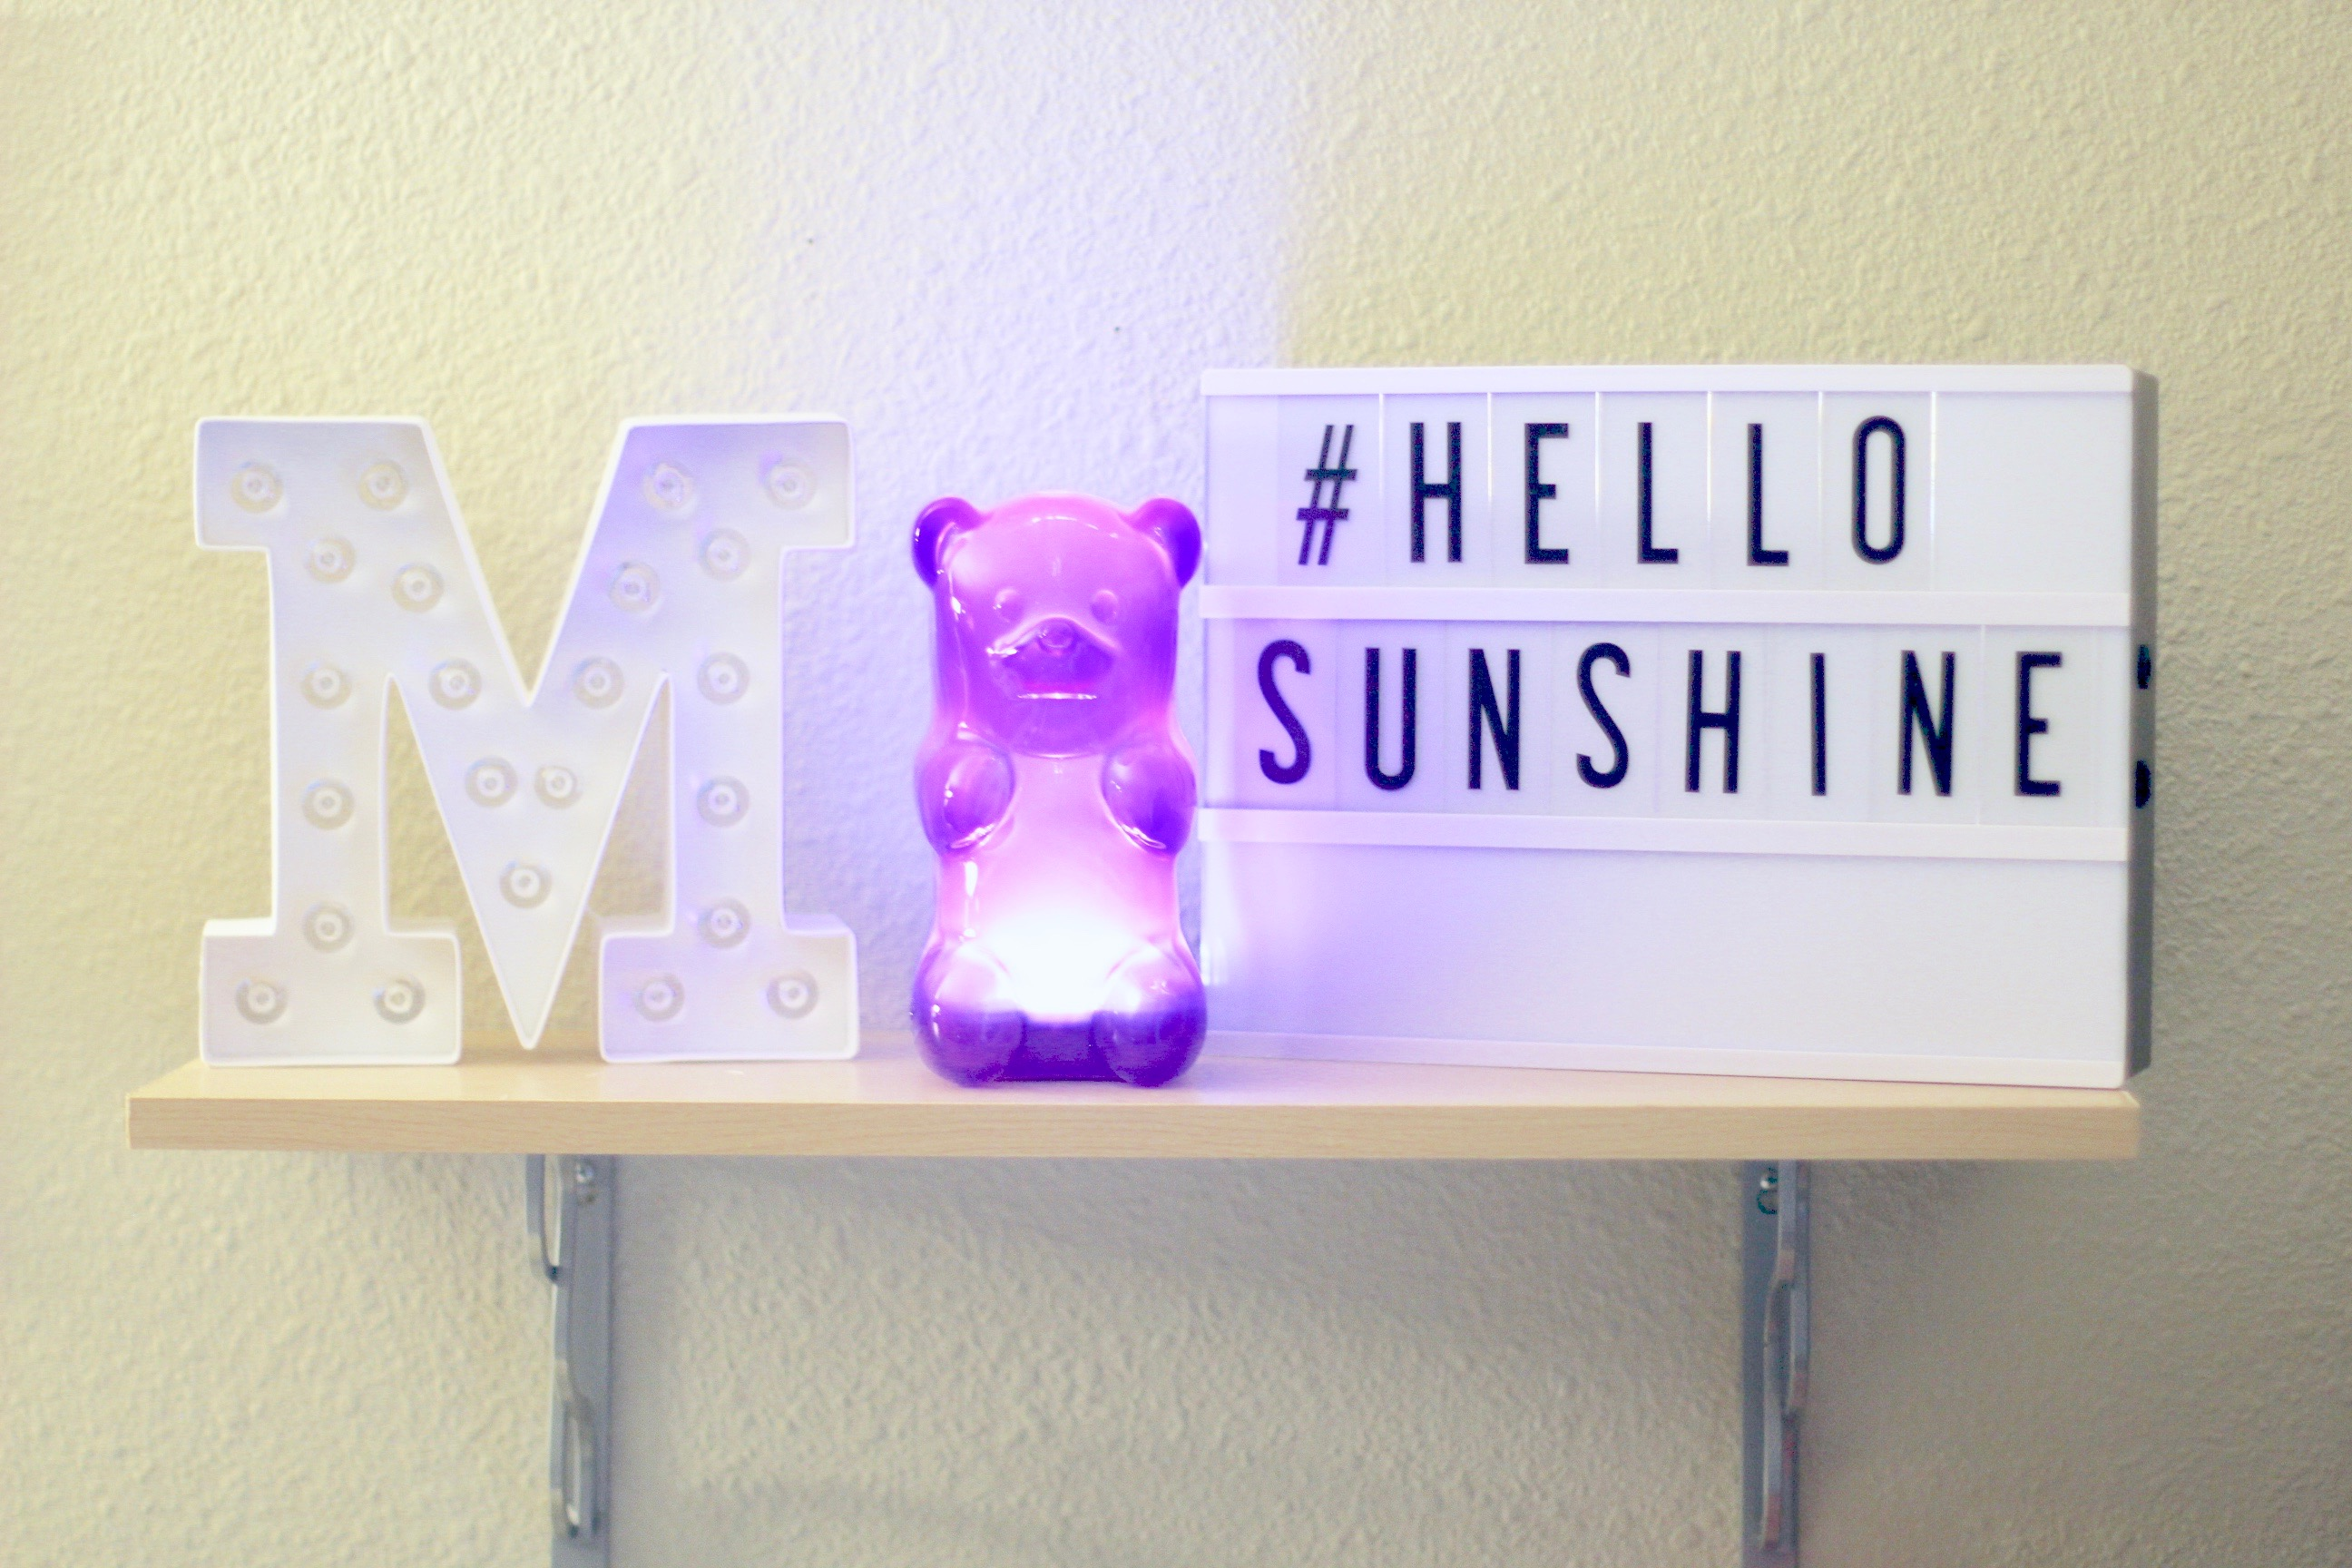 missyonmadison, melissa tierney, uncommon goods, gummy bear light, gummy bear night light, interior design, interior decor, interior decor inspo, pinterest ideas, you are beautiful, beautiful sign, wooden sign, inspirational decor, marquee light, movie props, initial lights, glitter mason jar, pink carnations, pink flowers, lifestyle blog, apartment decor, fashion blogger, home decor,